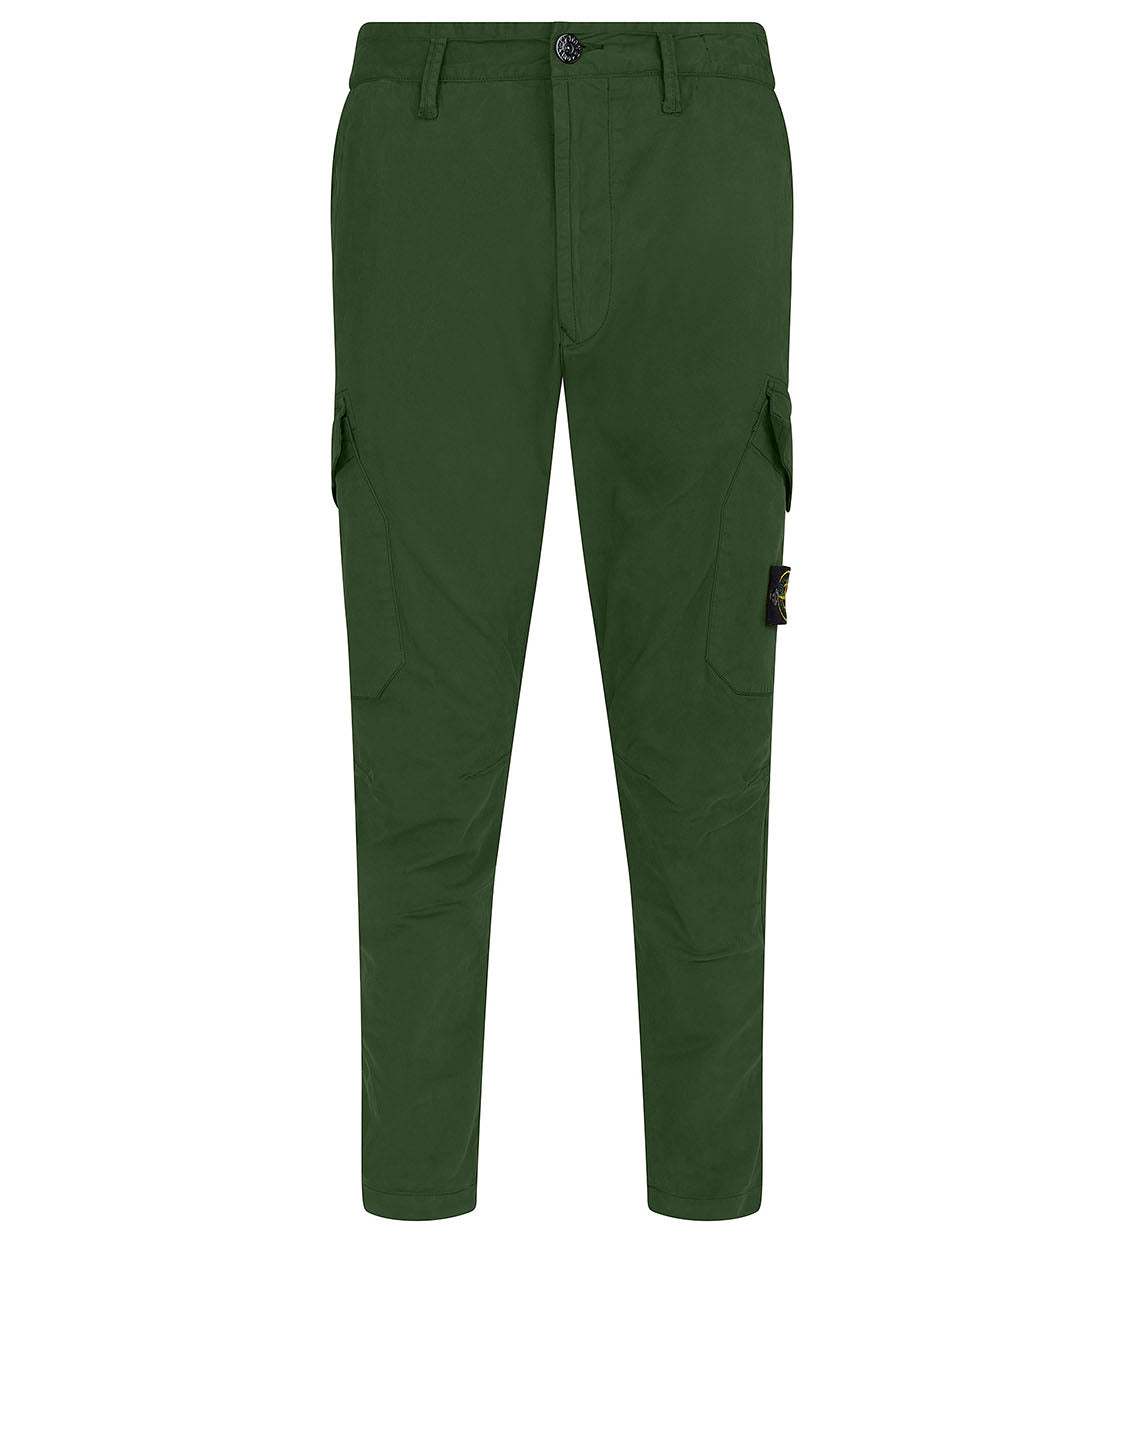 31310 Cargo Pants in Dark Forest